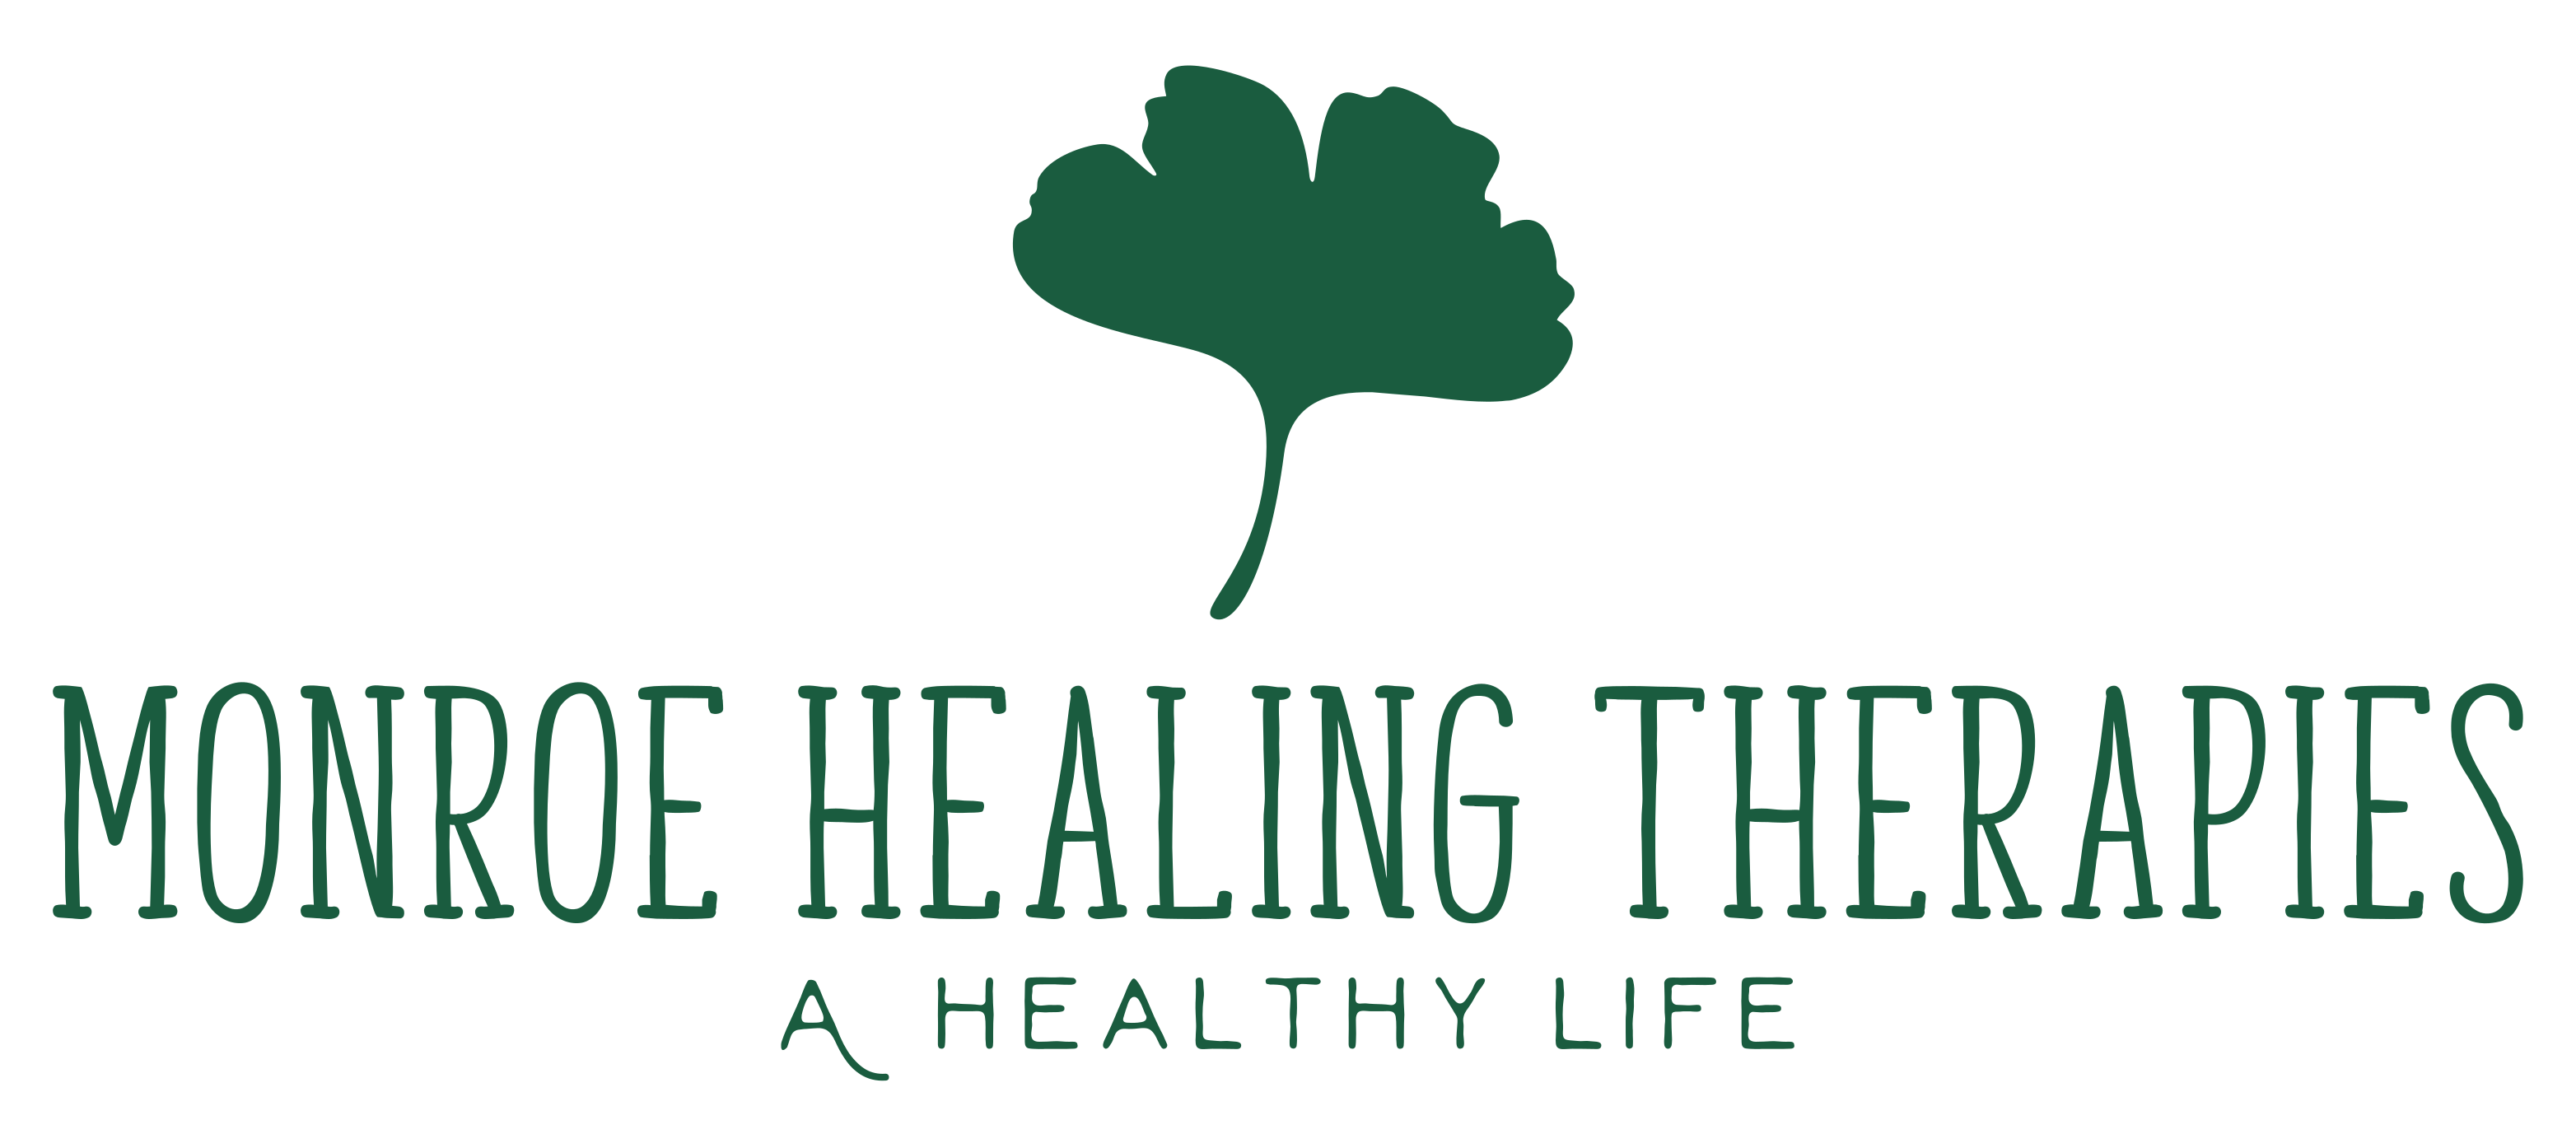 Monroe Healing Therapies